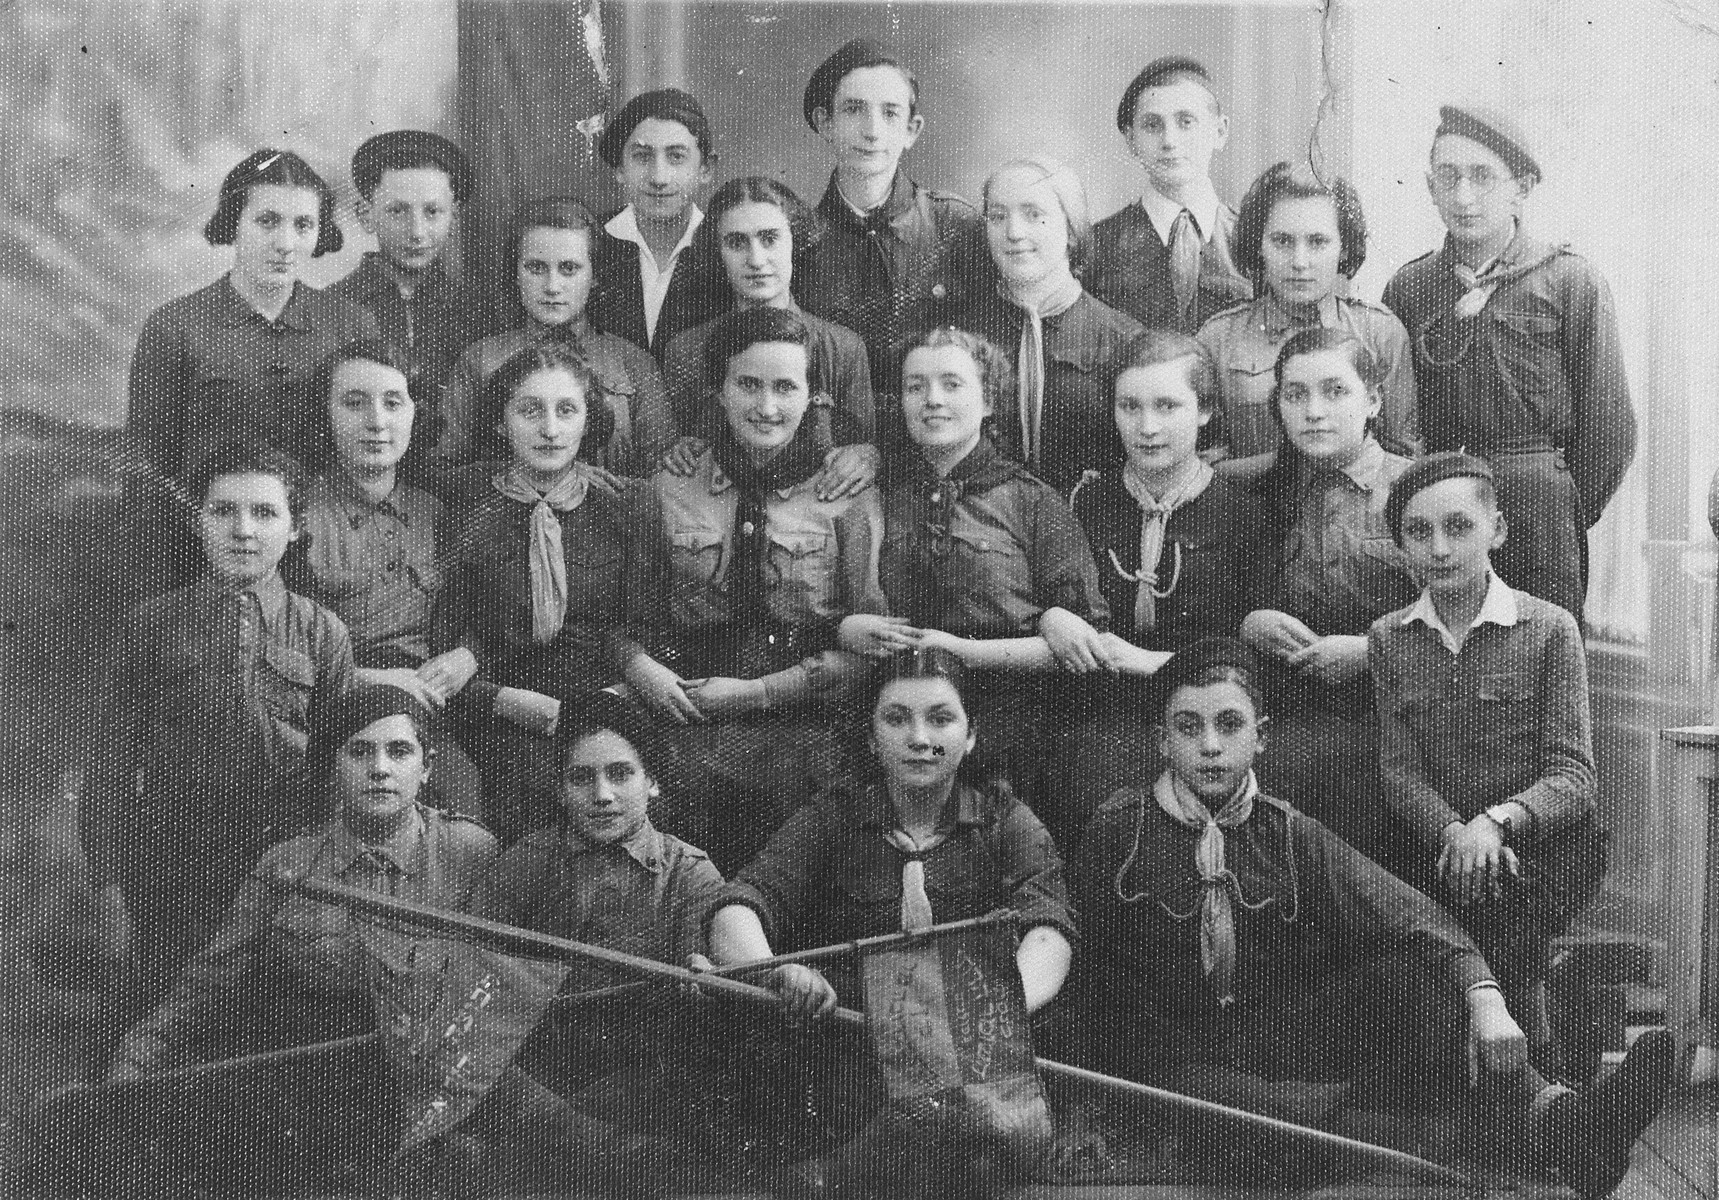 Group portrait of members the the Hasmonean chapter of the Hashomer Hadati religious Zionist youth movement in Dabrowa Gornicza, Poland.  Pictured in the top row from right to left are: Zvi Rechnic, Hercko Lenczner, Lewkowicz, Moniek Rozen and Moniek Szeps; in the second row from the top, from right to left are: Frumka Kener and L. Tenenbaum, others unknown; in the third row from the top, from right to left are: Jakub Bajtner (kneeling), Miriam Oks, Miriam Bajtner, Dwora Oks and Chava Bajtner; in the front row are Motek Ostrowiecki, Sala Gottlieb, Chanan Kener, and unknown.